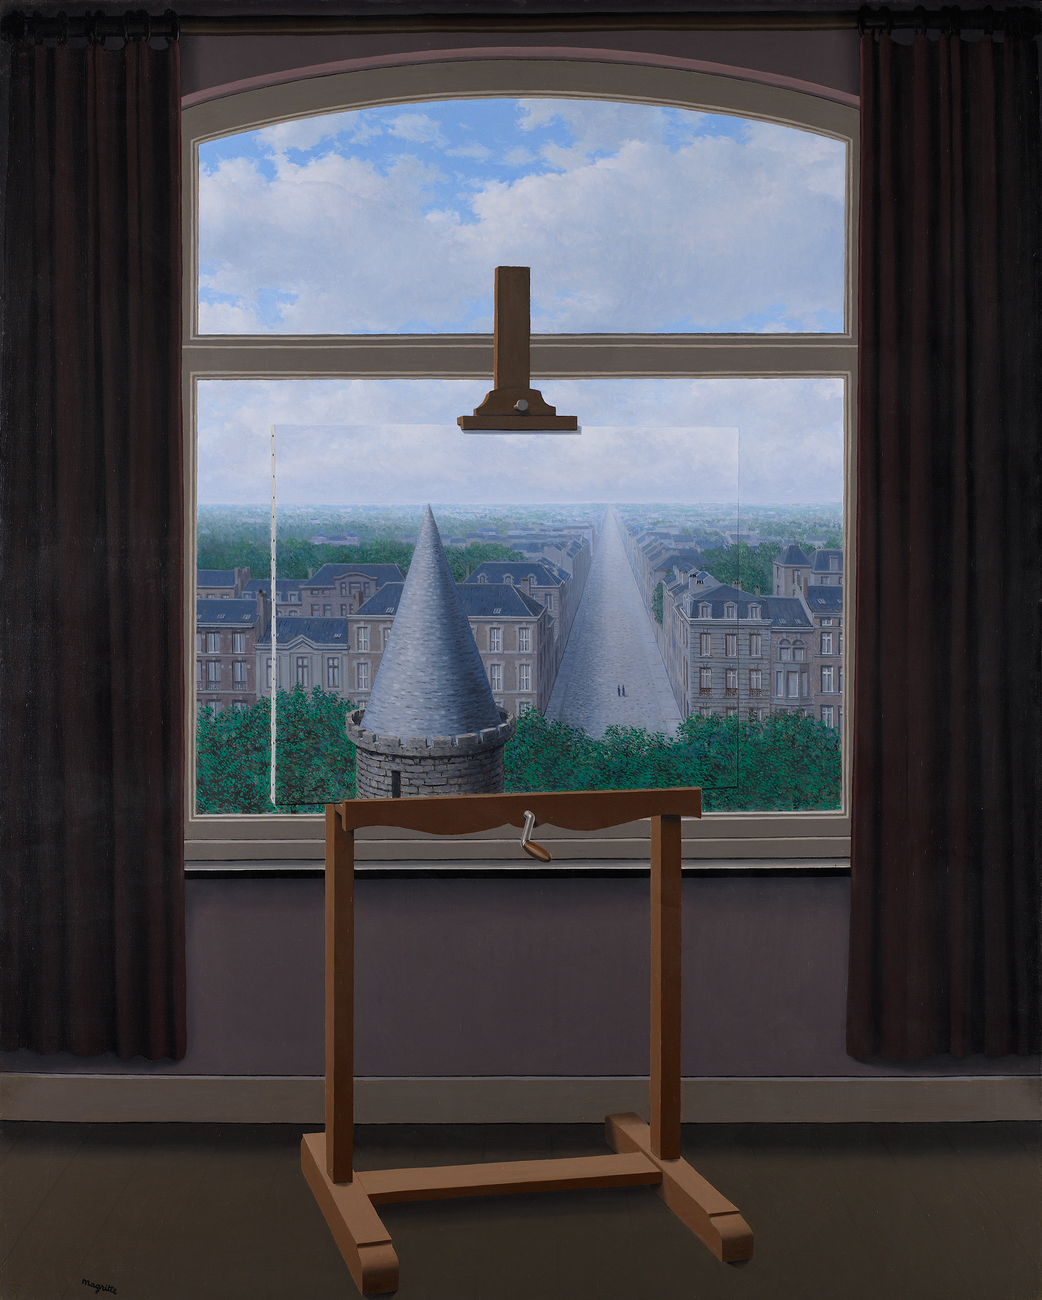 Painting easel against a window, holding a canvas that seems to perfectly match the cityscape behind